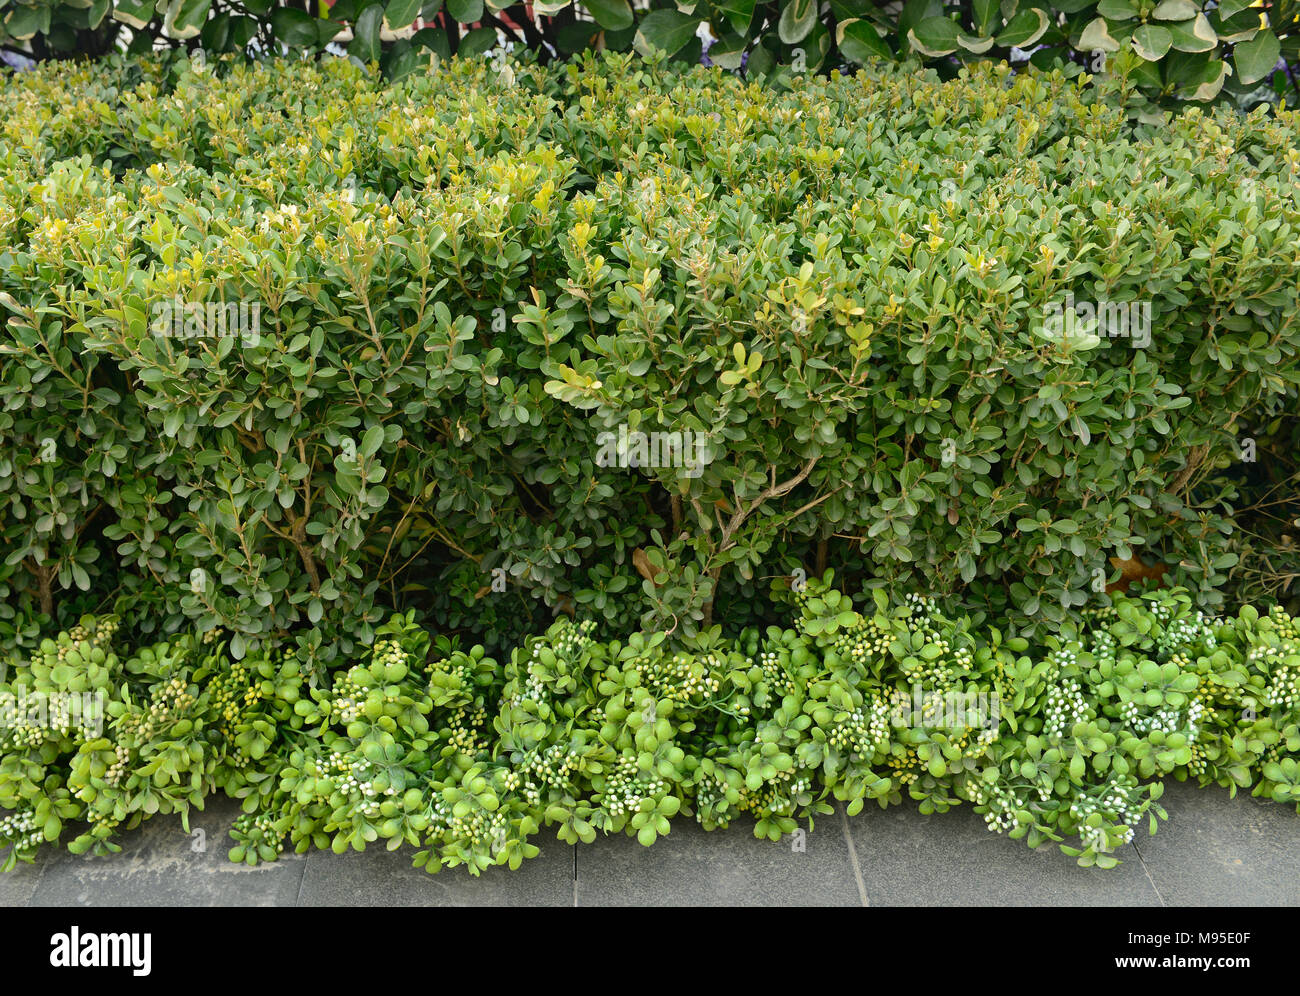 A real hedge behind with plastic branches of the same type of shrub covering a hard landscaping feature in front in Wangjing district, Beijing, China. - Stock Image